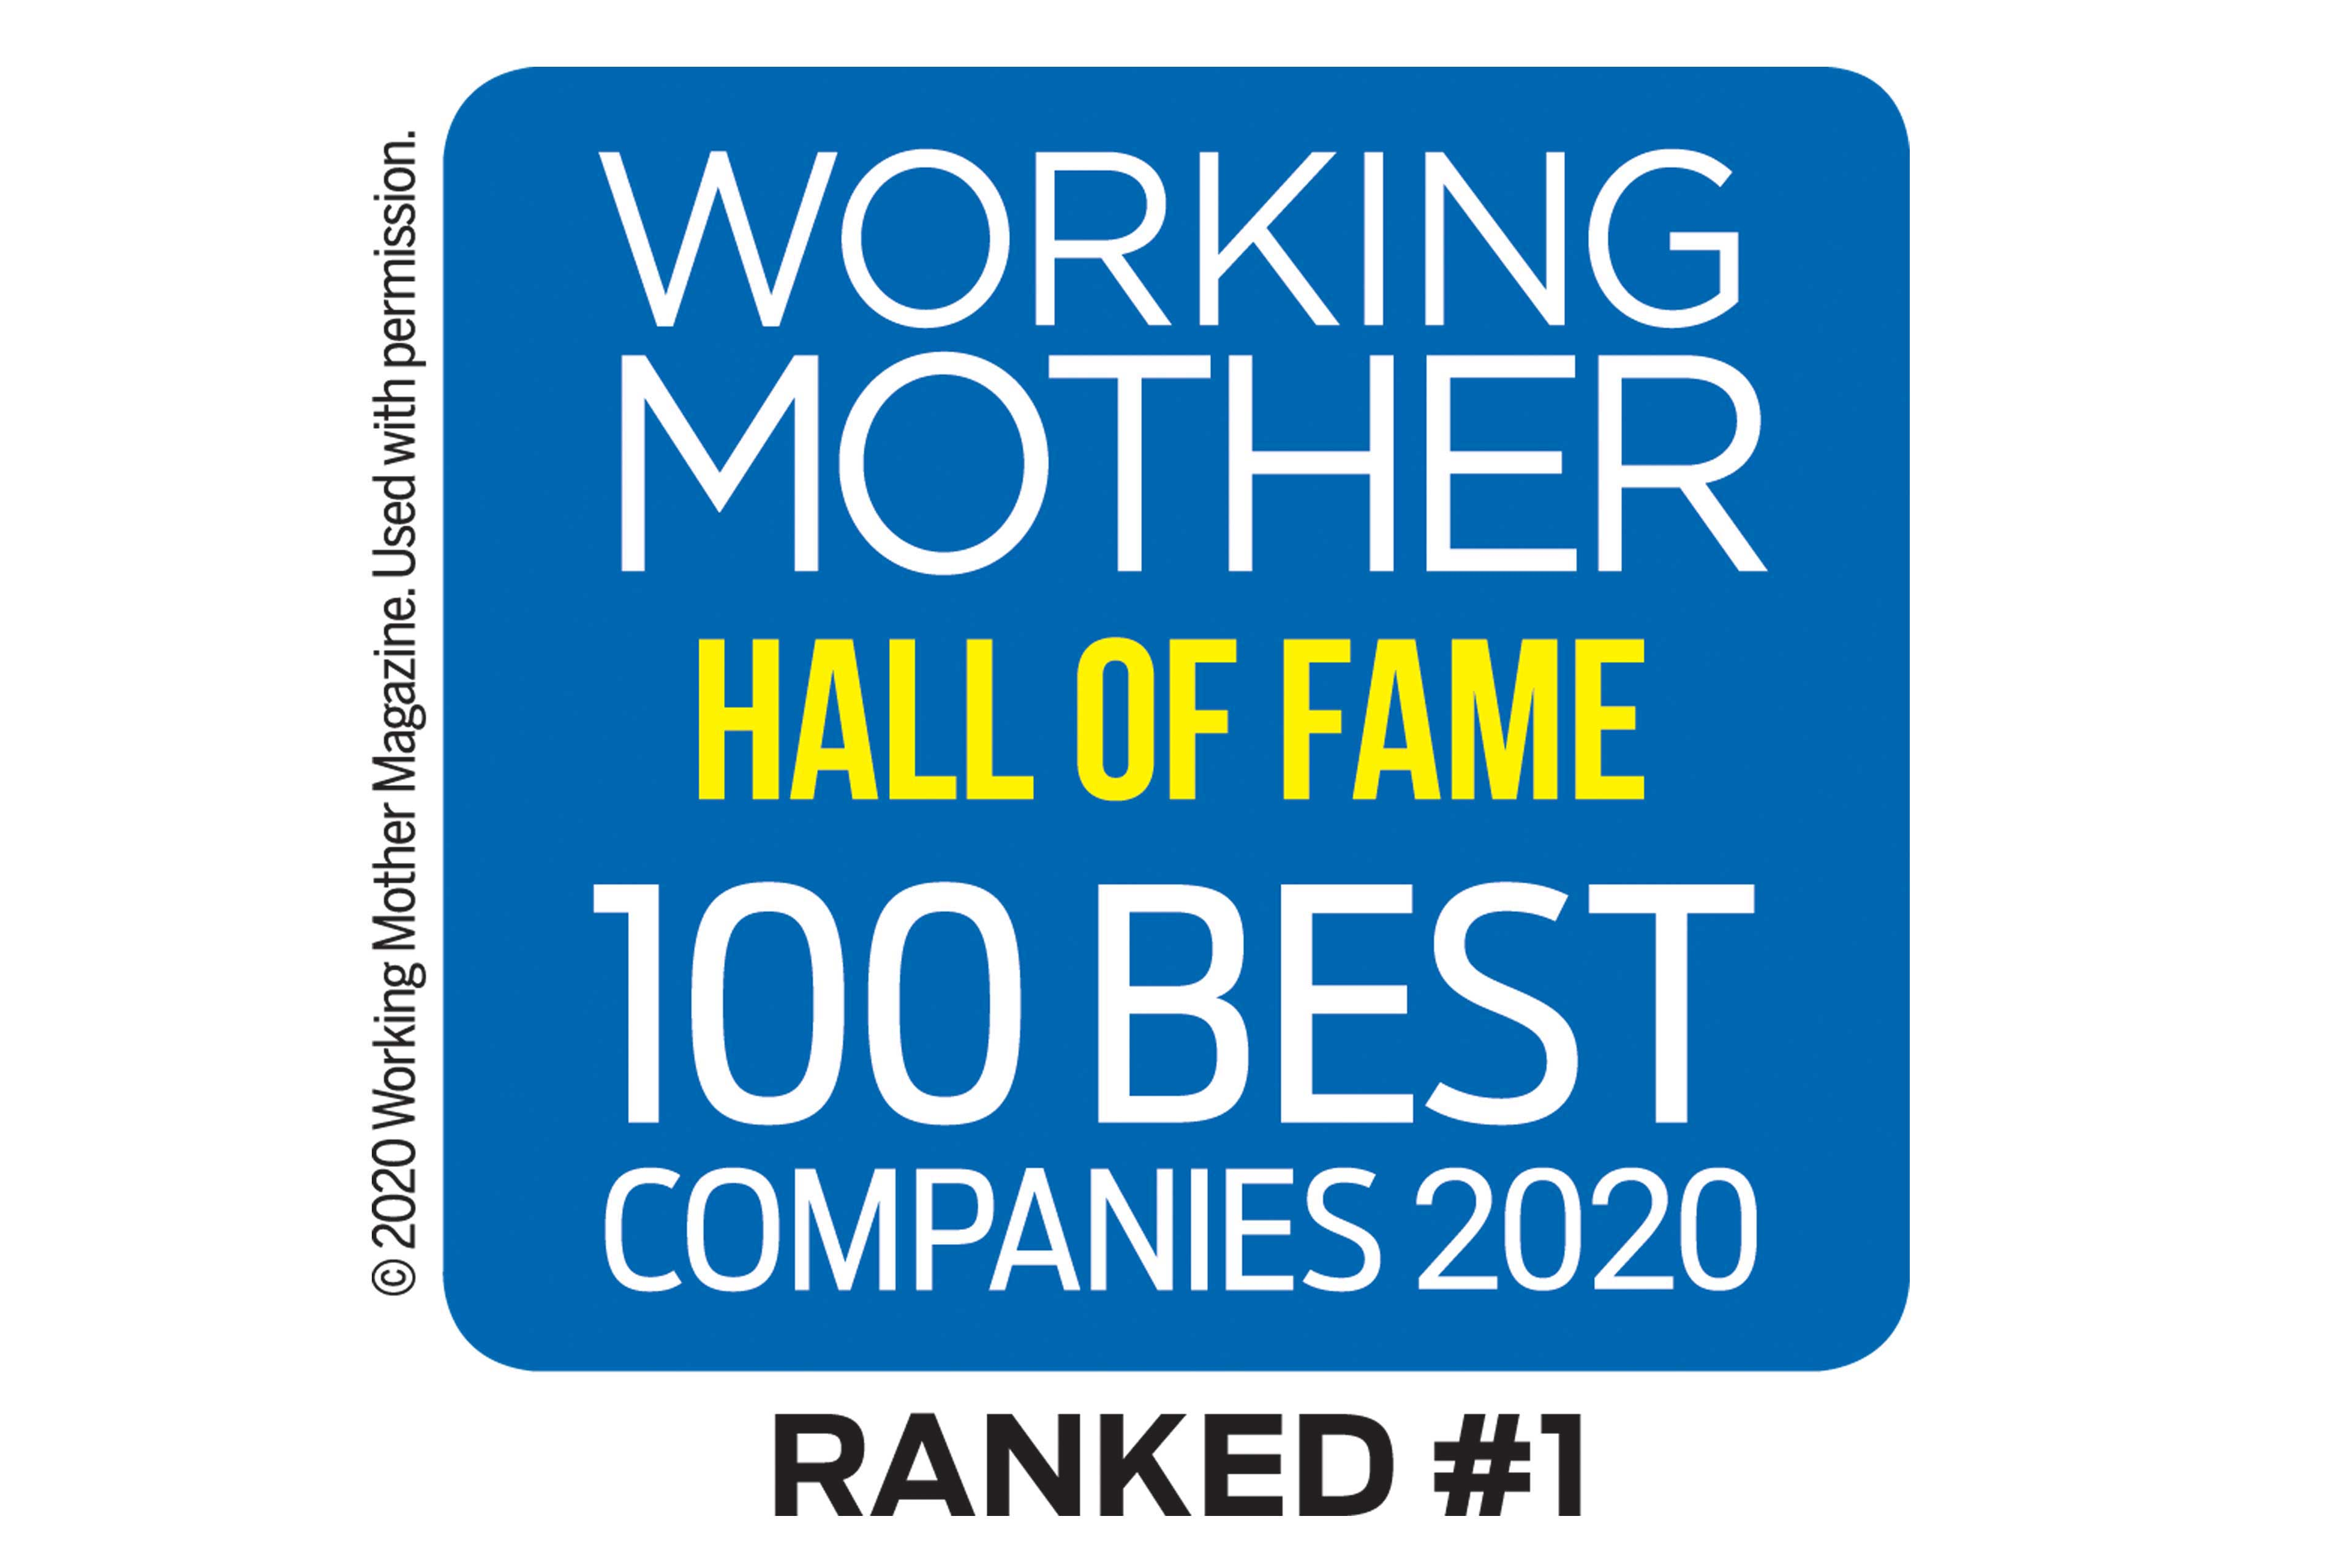 Working Mother 100 Best Companies 2020